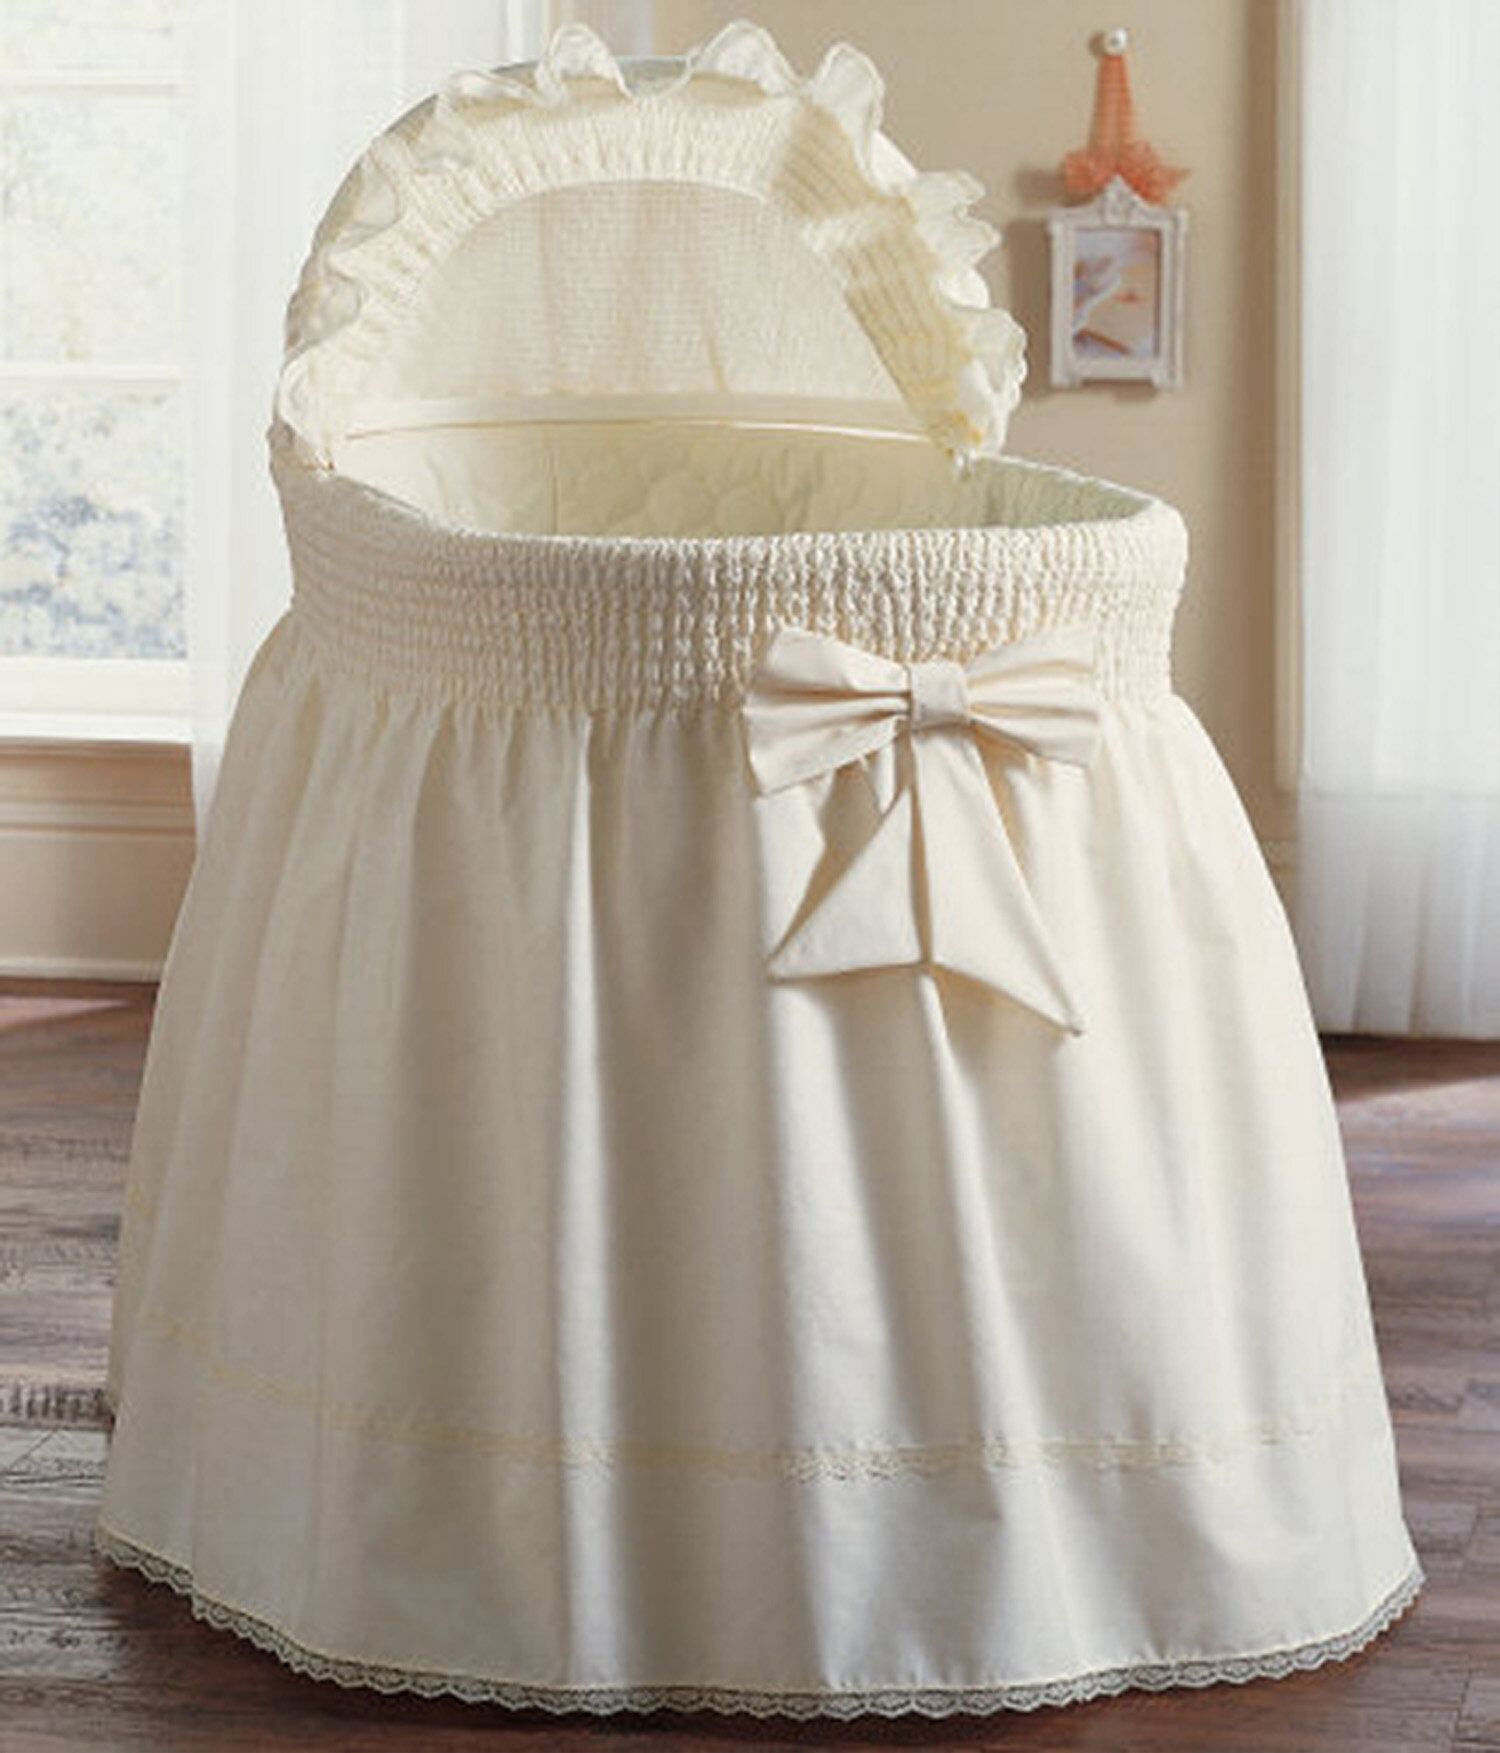 harriet bee jeannette sea shell bassinet bedding set reviews wayfair - Bassinet Bedding